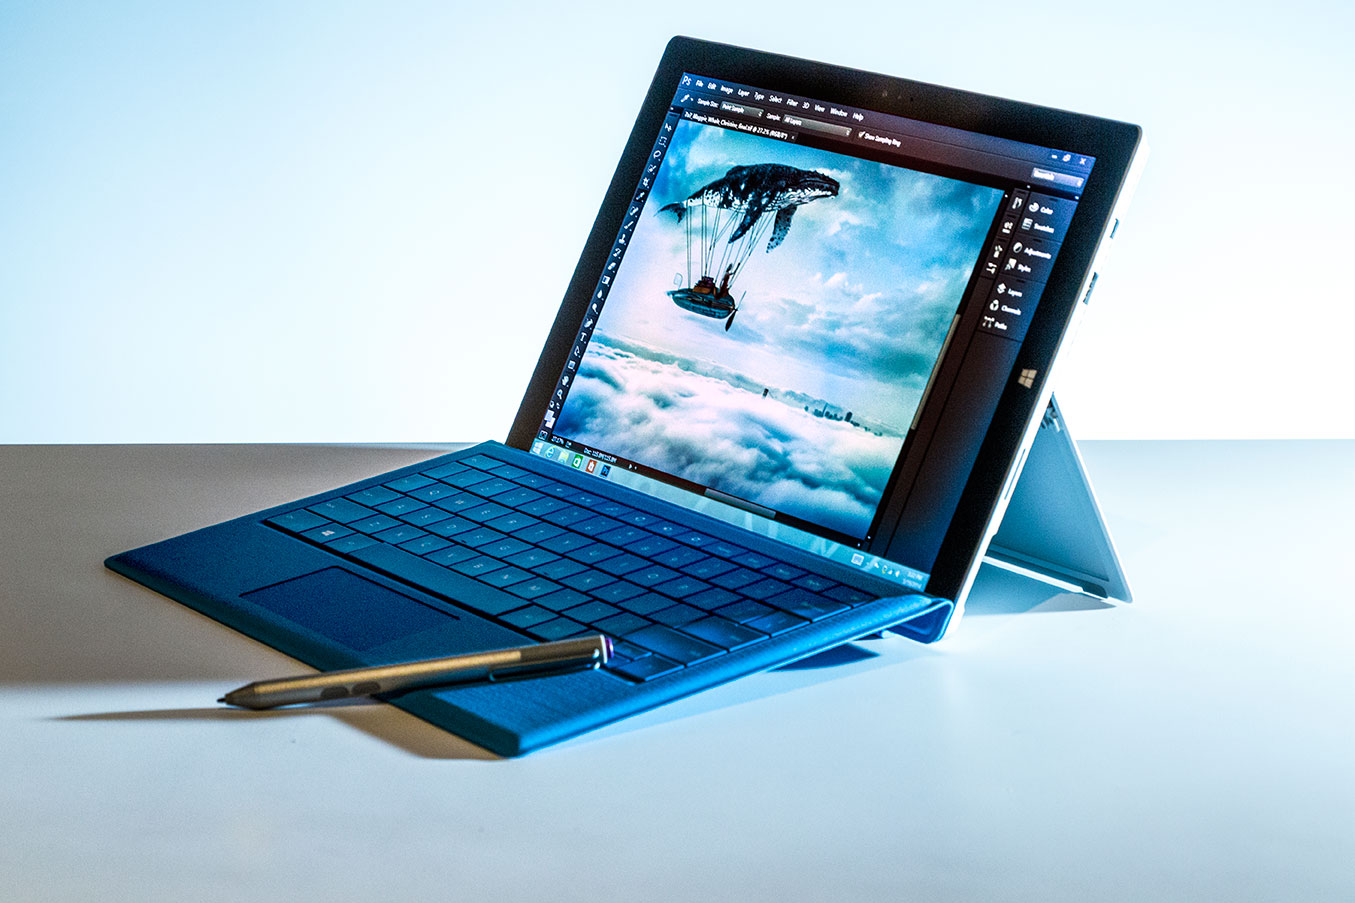 microsoft surface pro 3 announced blog. Black Bedroom Furniture Sets. Home Design Ideas